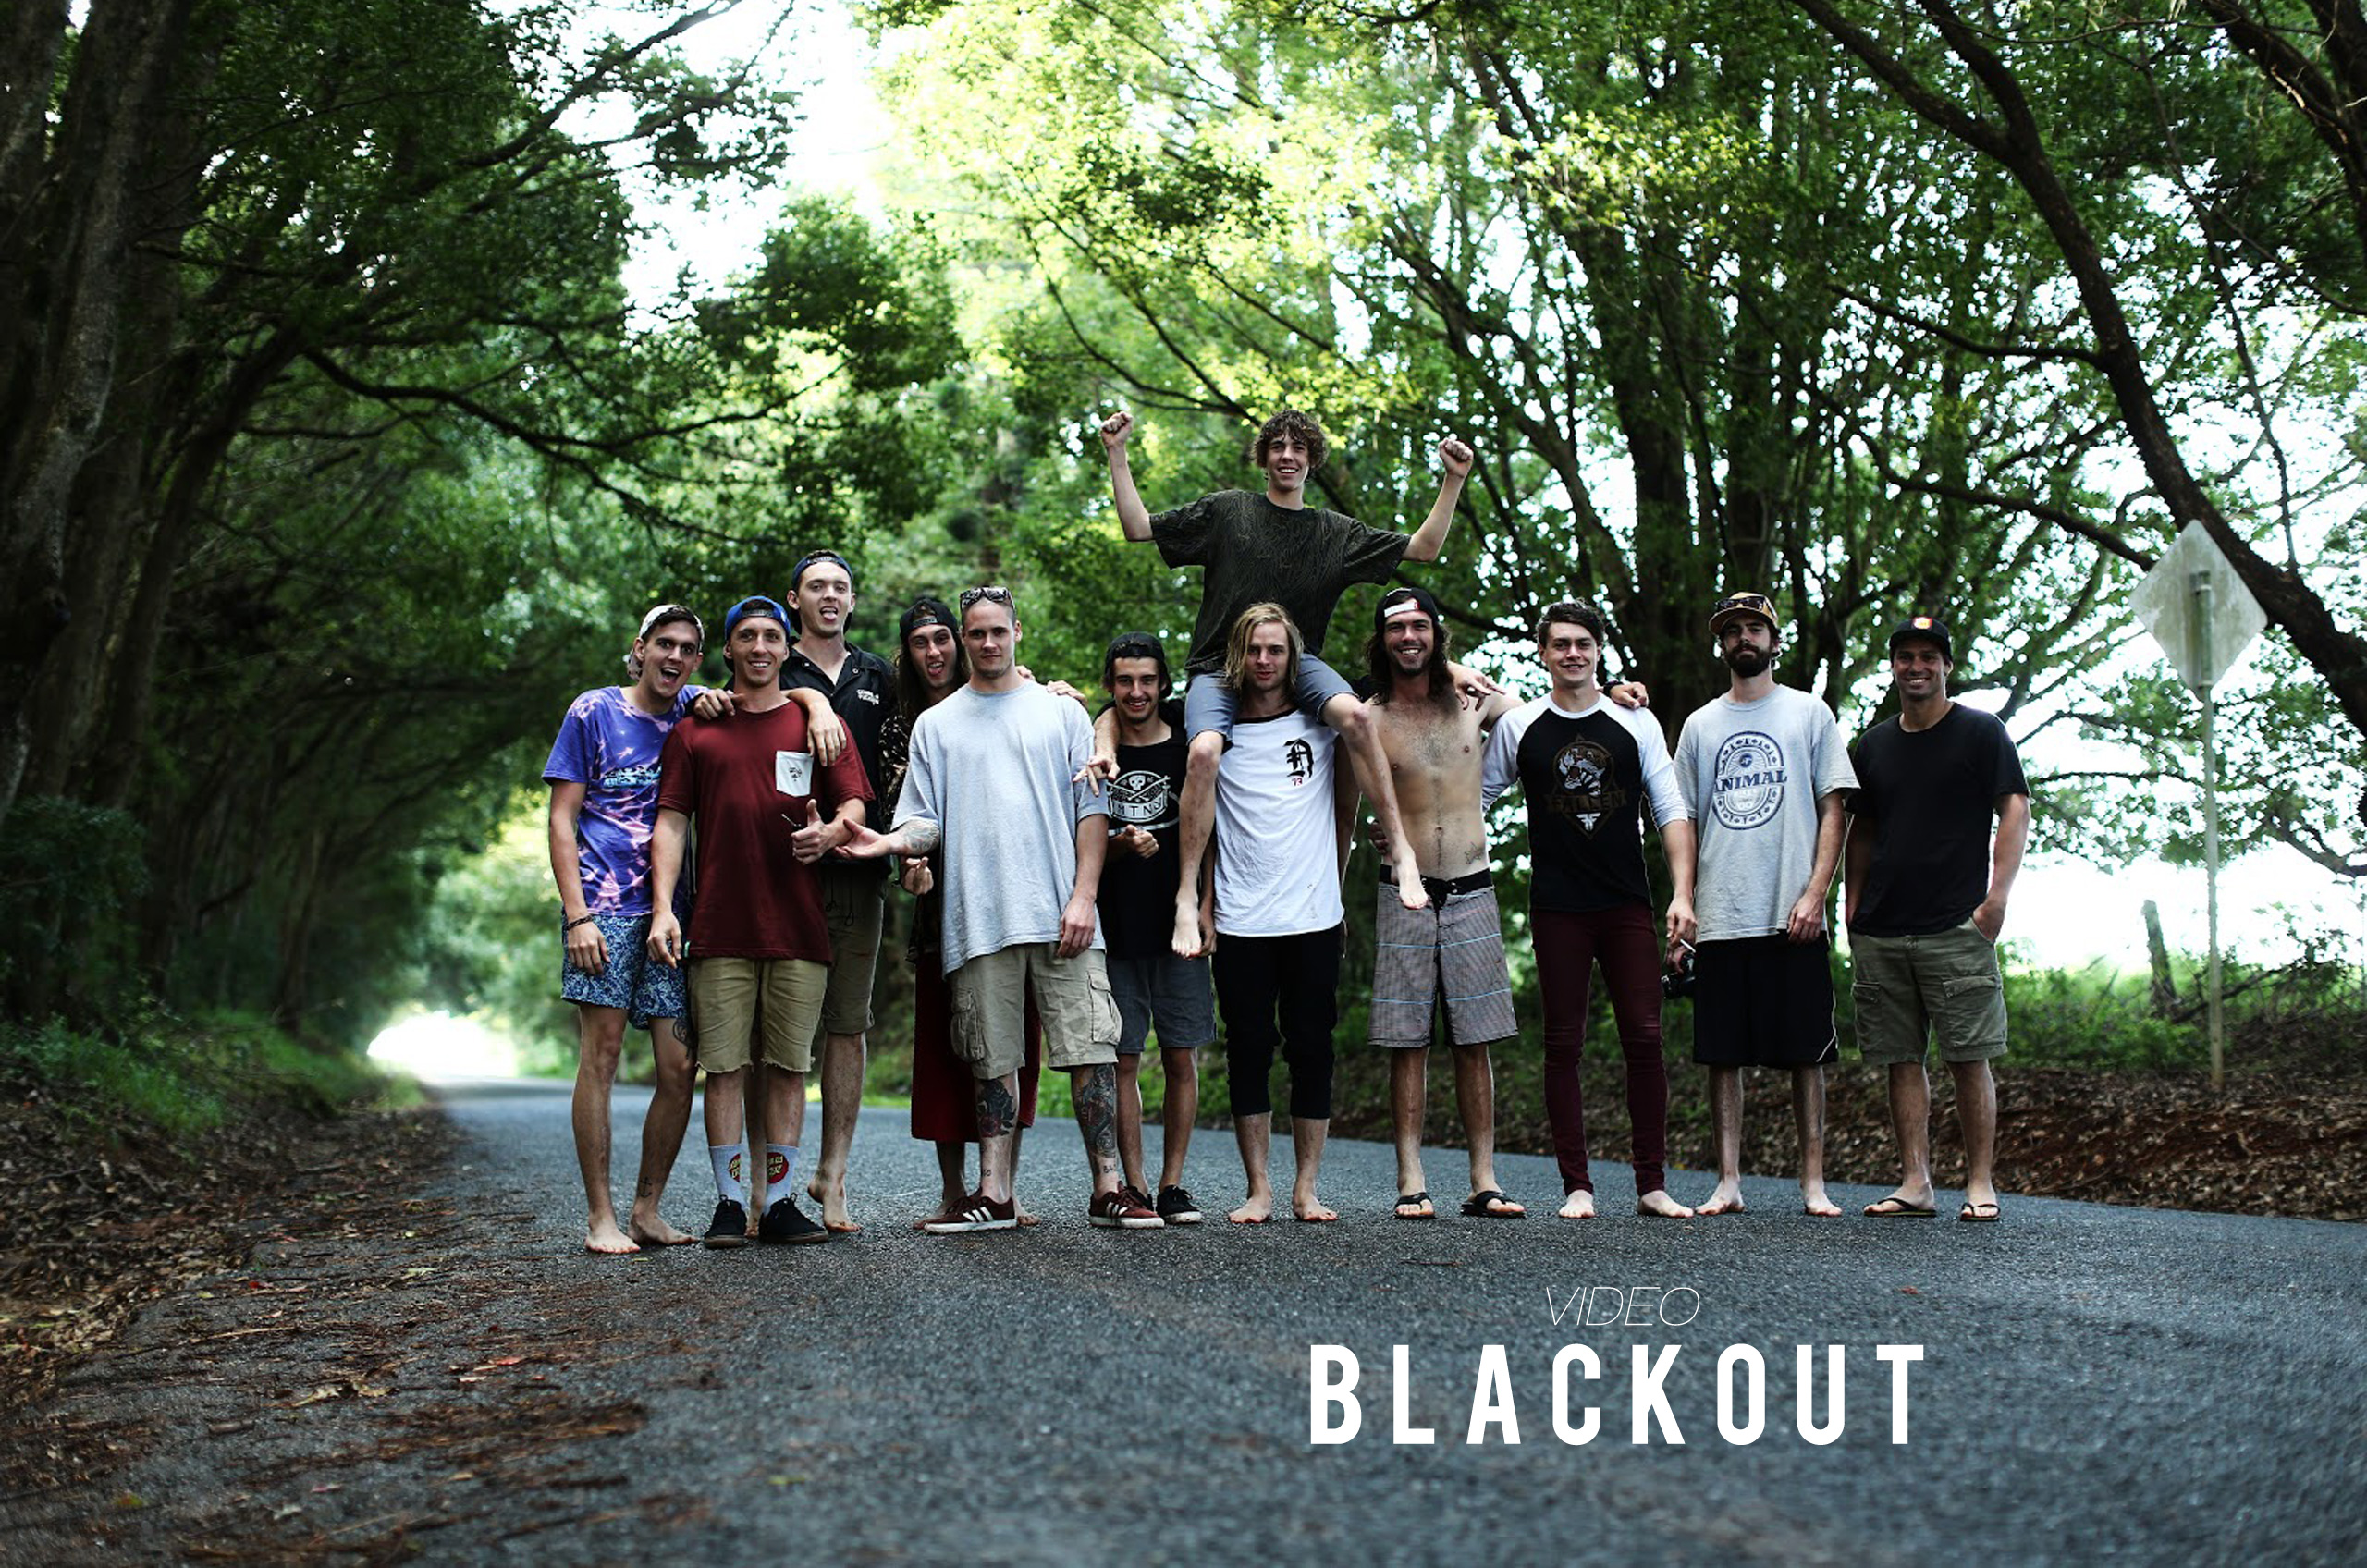 Video – Blackout